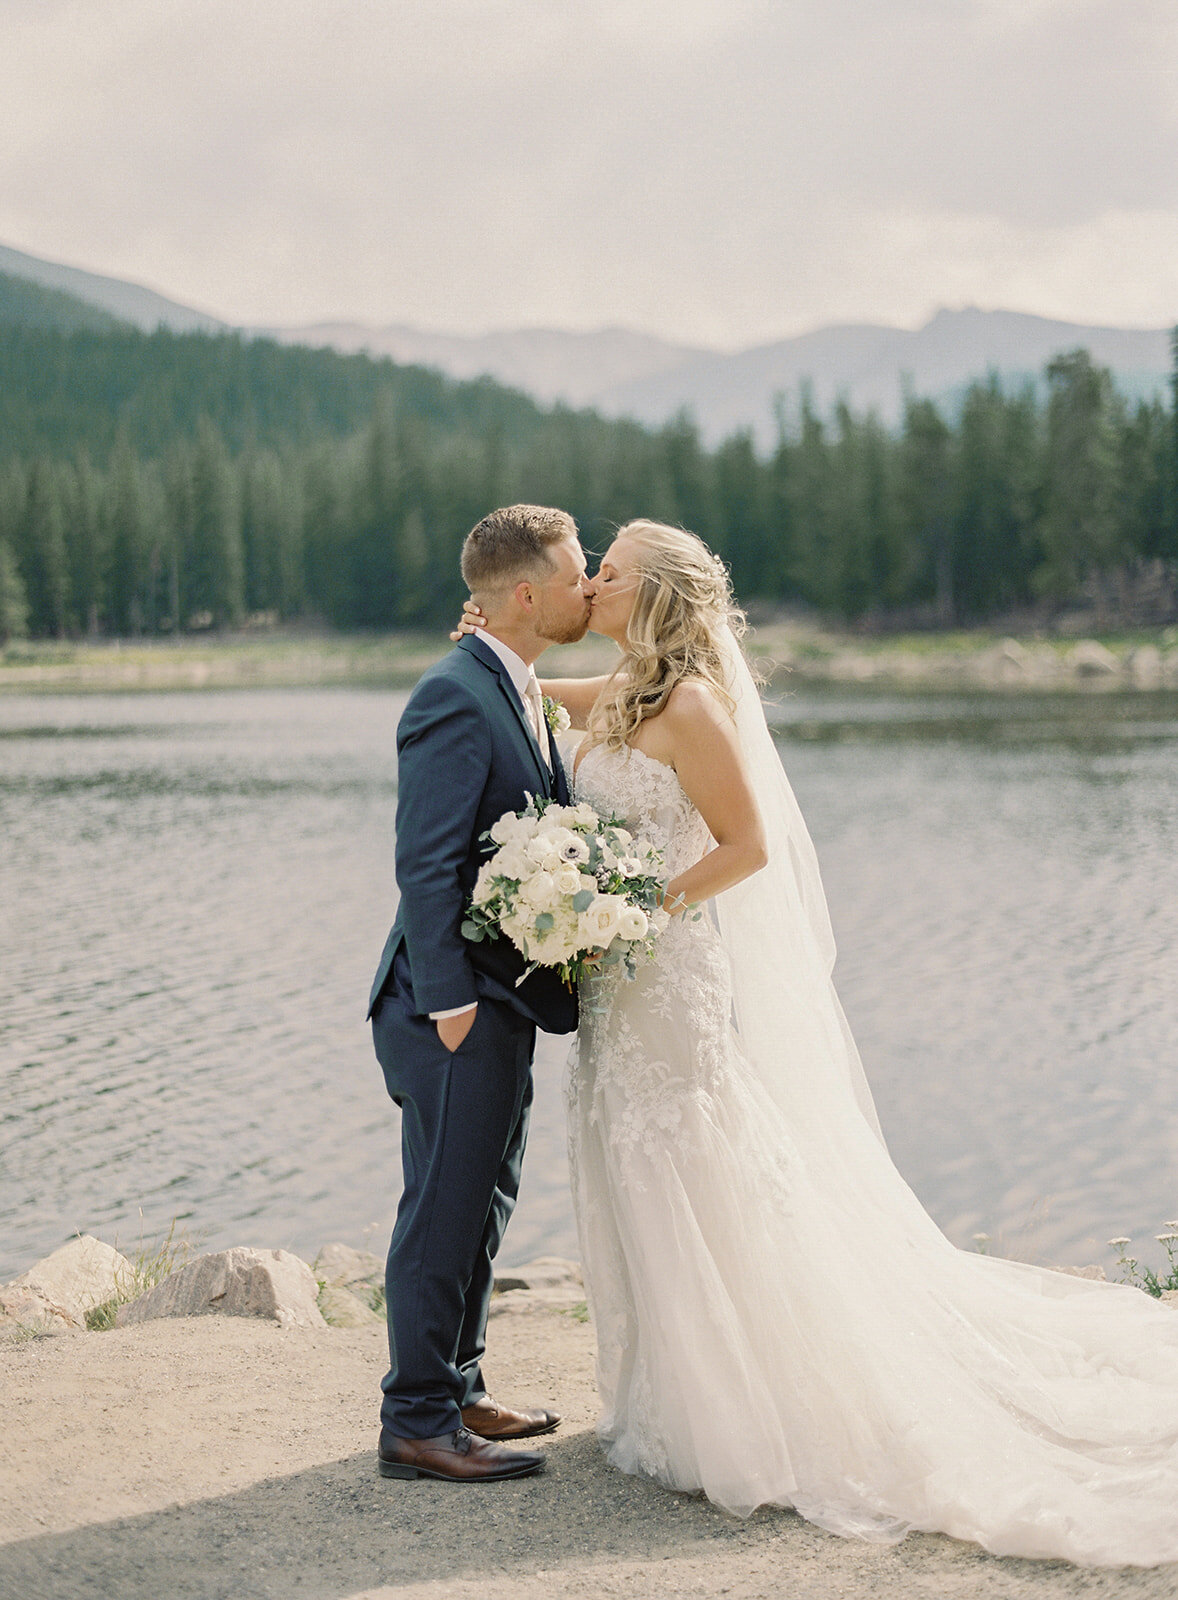 Tear & Tyler. Colorado Wedding by Alp & Isle. First Look-16